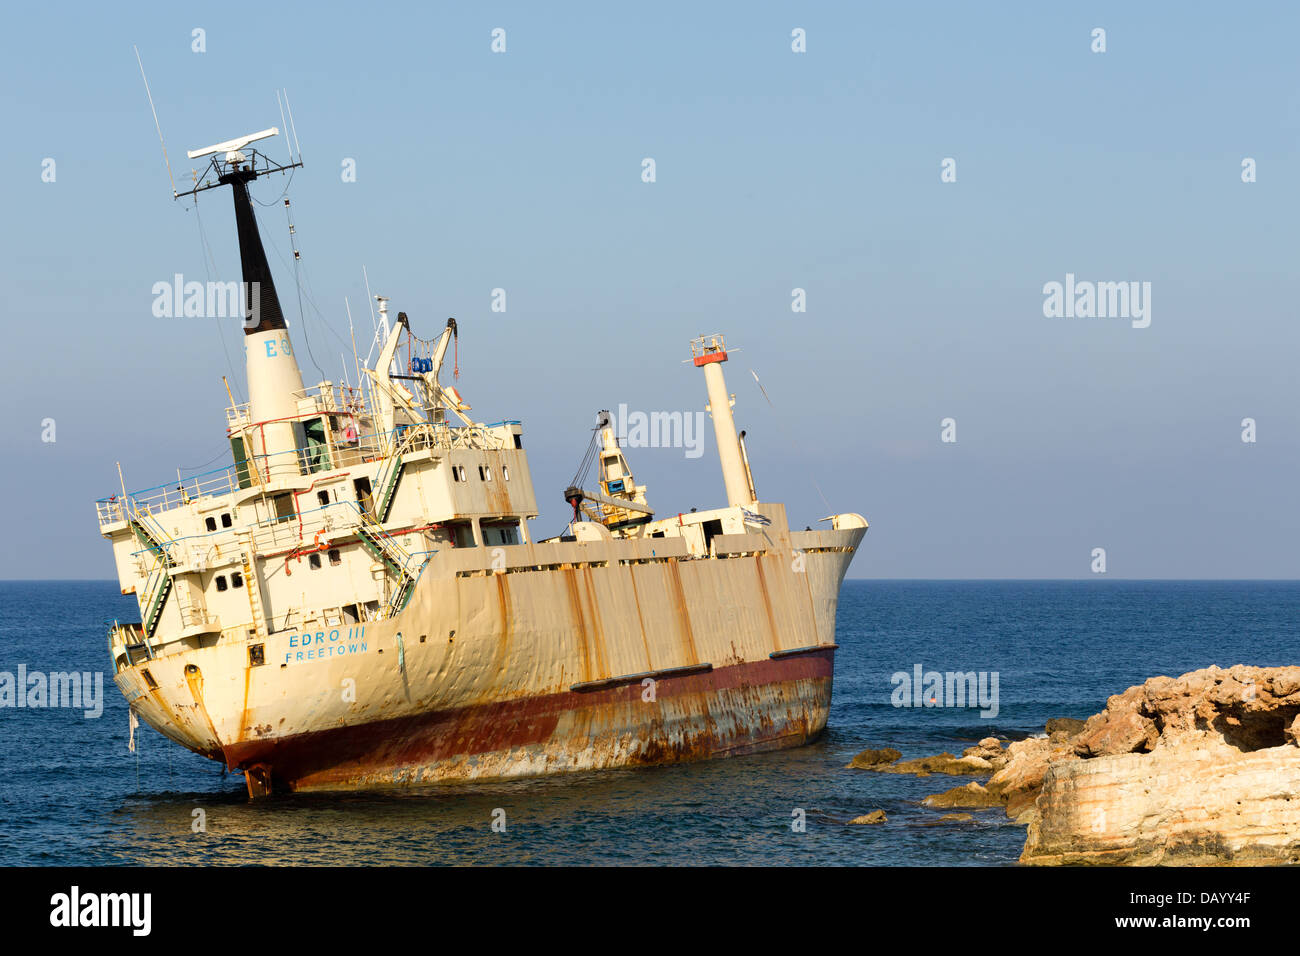 The Wreck of the Edro III, Sea Caves, Paphos - Stock Image